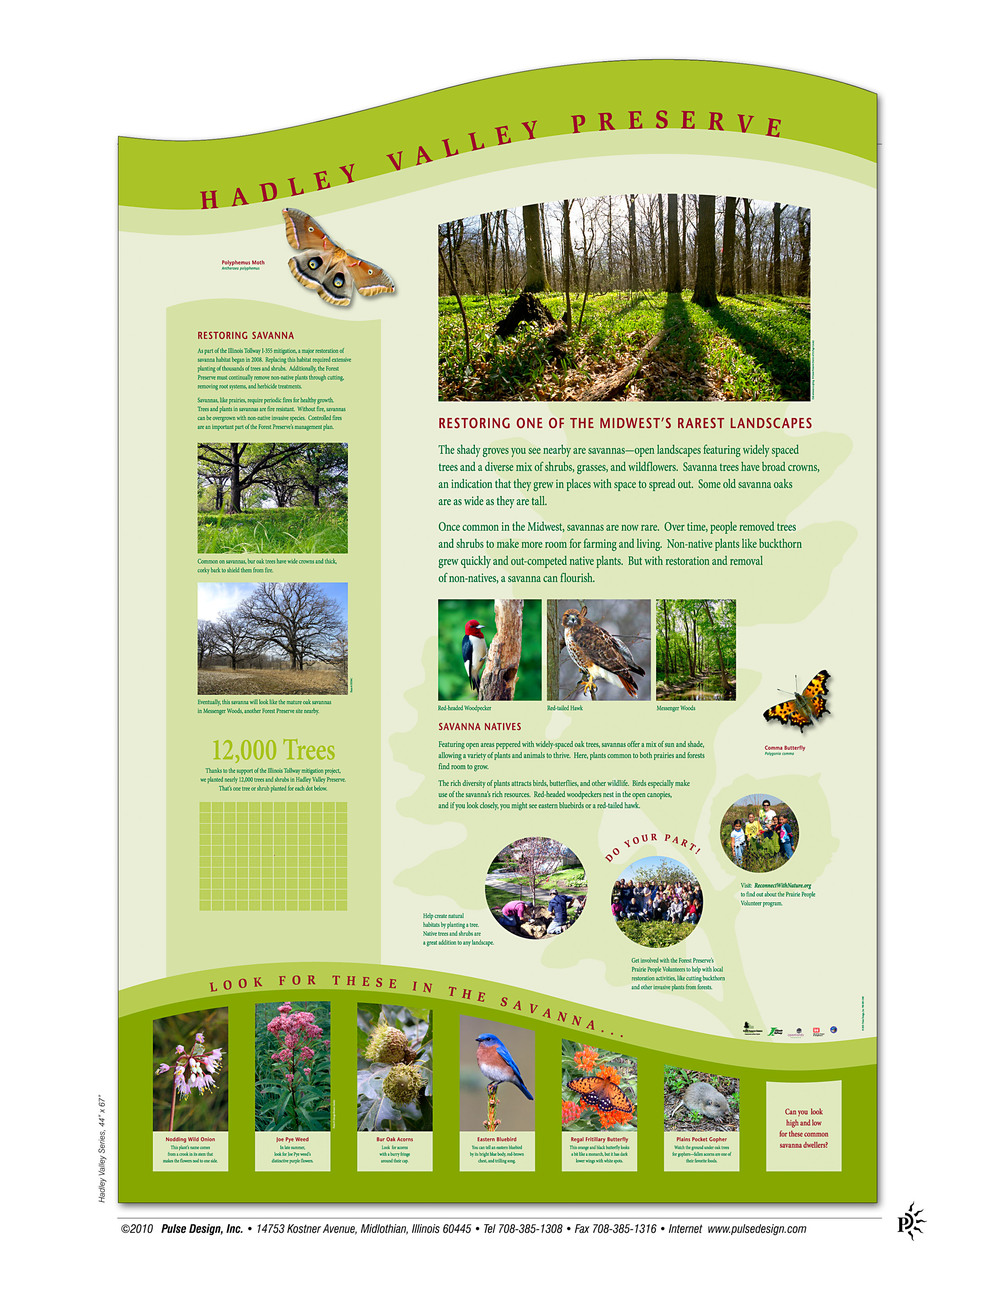 Hadley-Valley-Trail-Sign-Oak-Panel-Pulse-Design-Inc.jpg